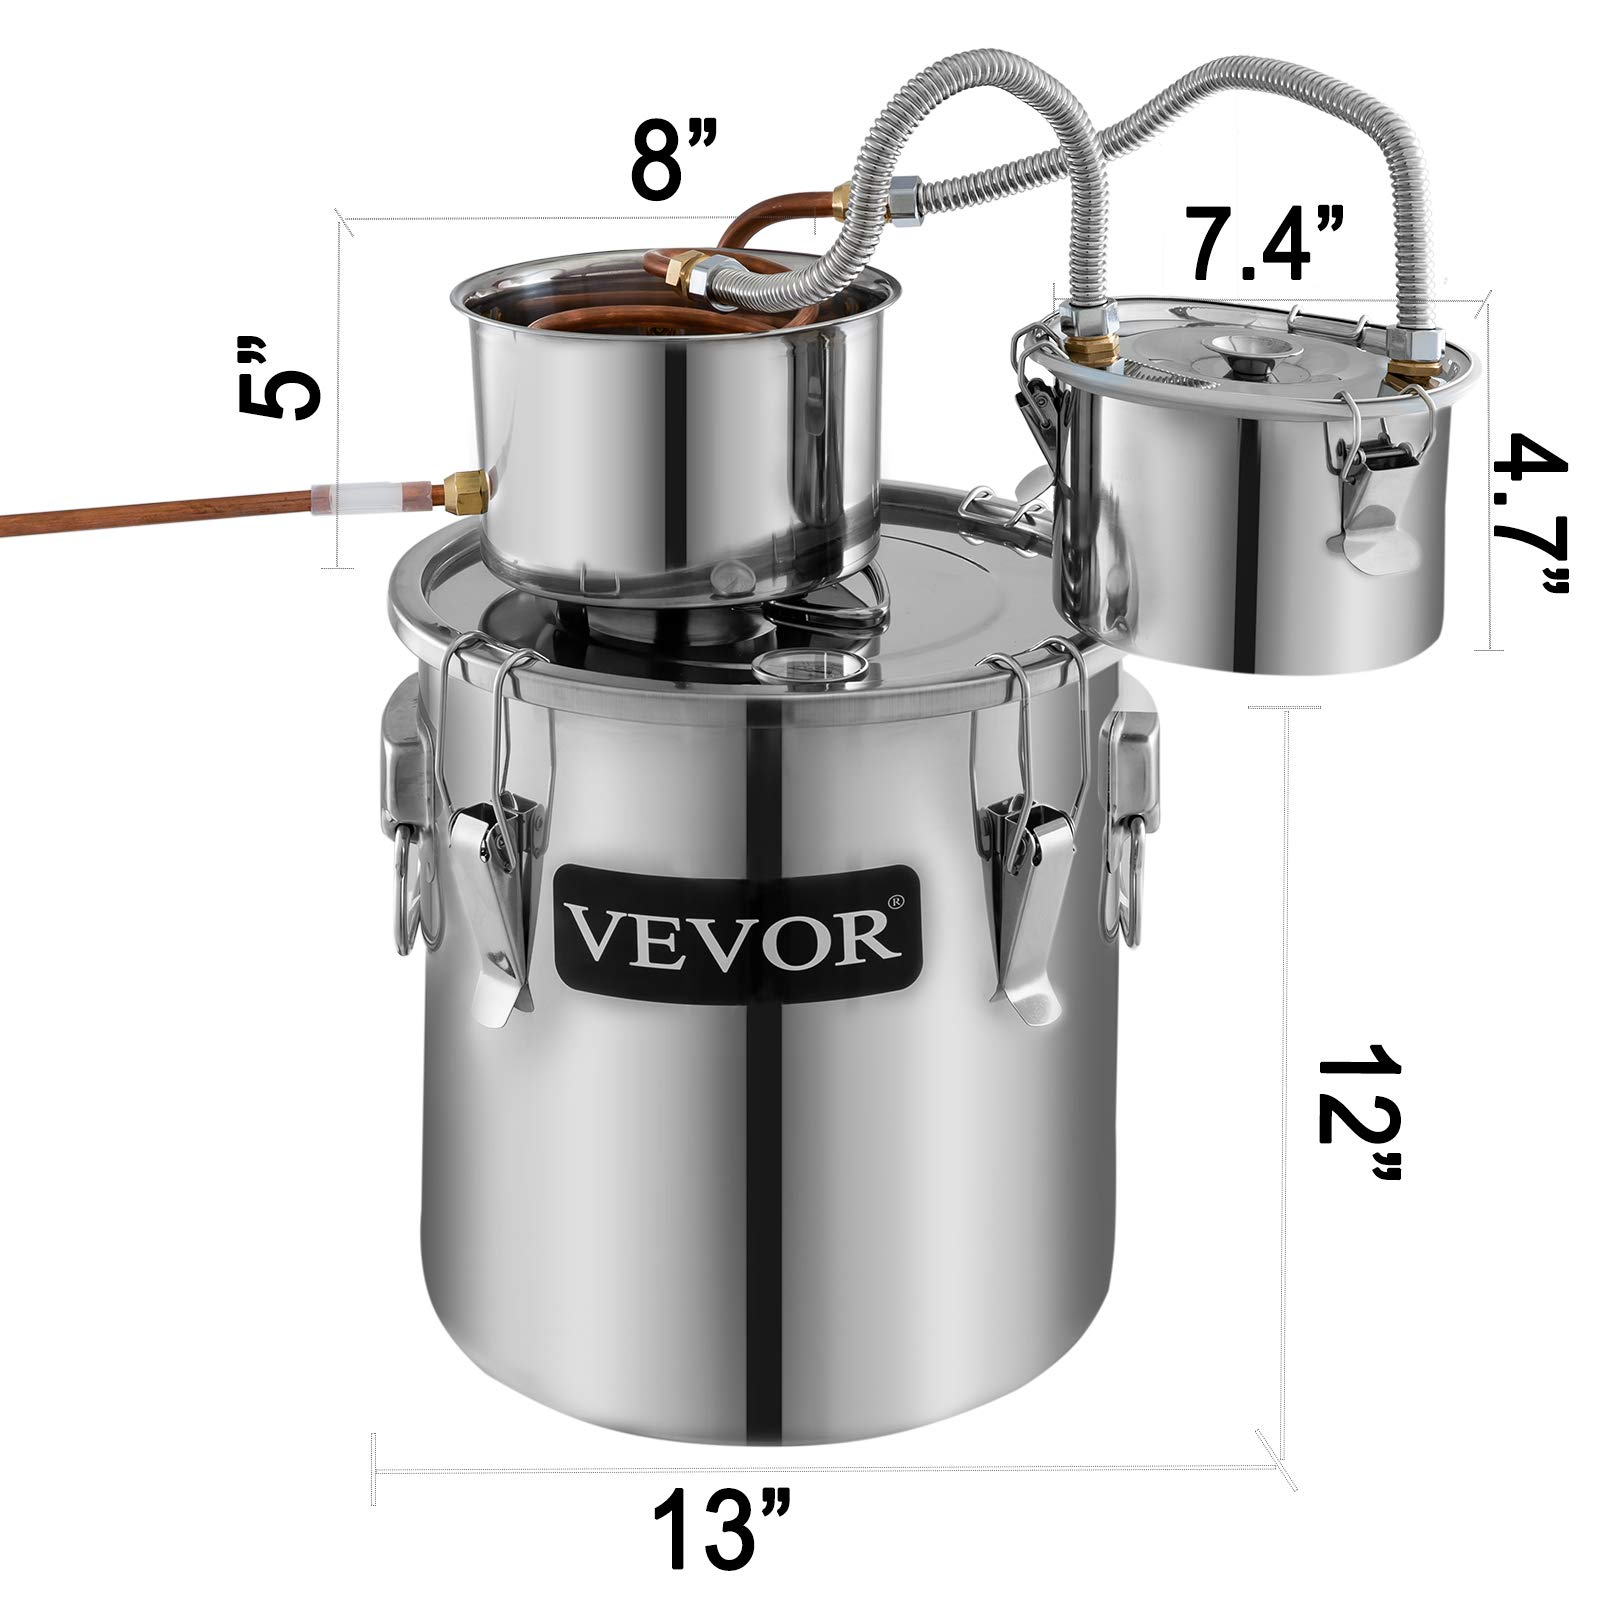 VEVOR Moonshine Still 5 Gal 21L Stainless Steel Water Alcohol Distiller Copper Tube Home Brewing Kit Build-in Thermometer for DIY Whisky Wine Brandy, 3 pots by VEVOR (Image #2)